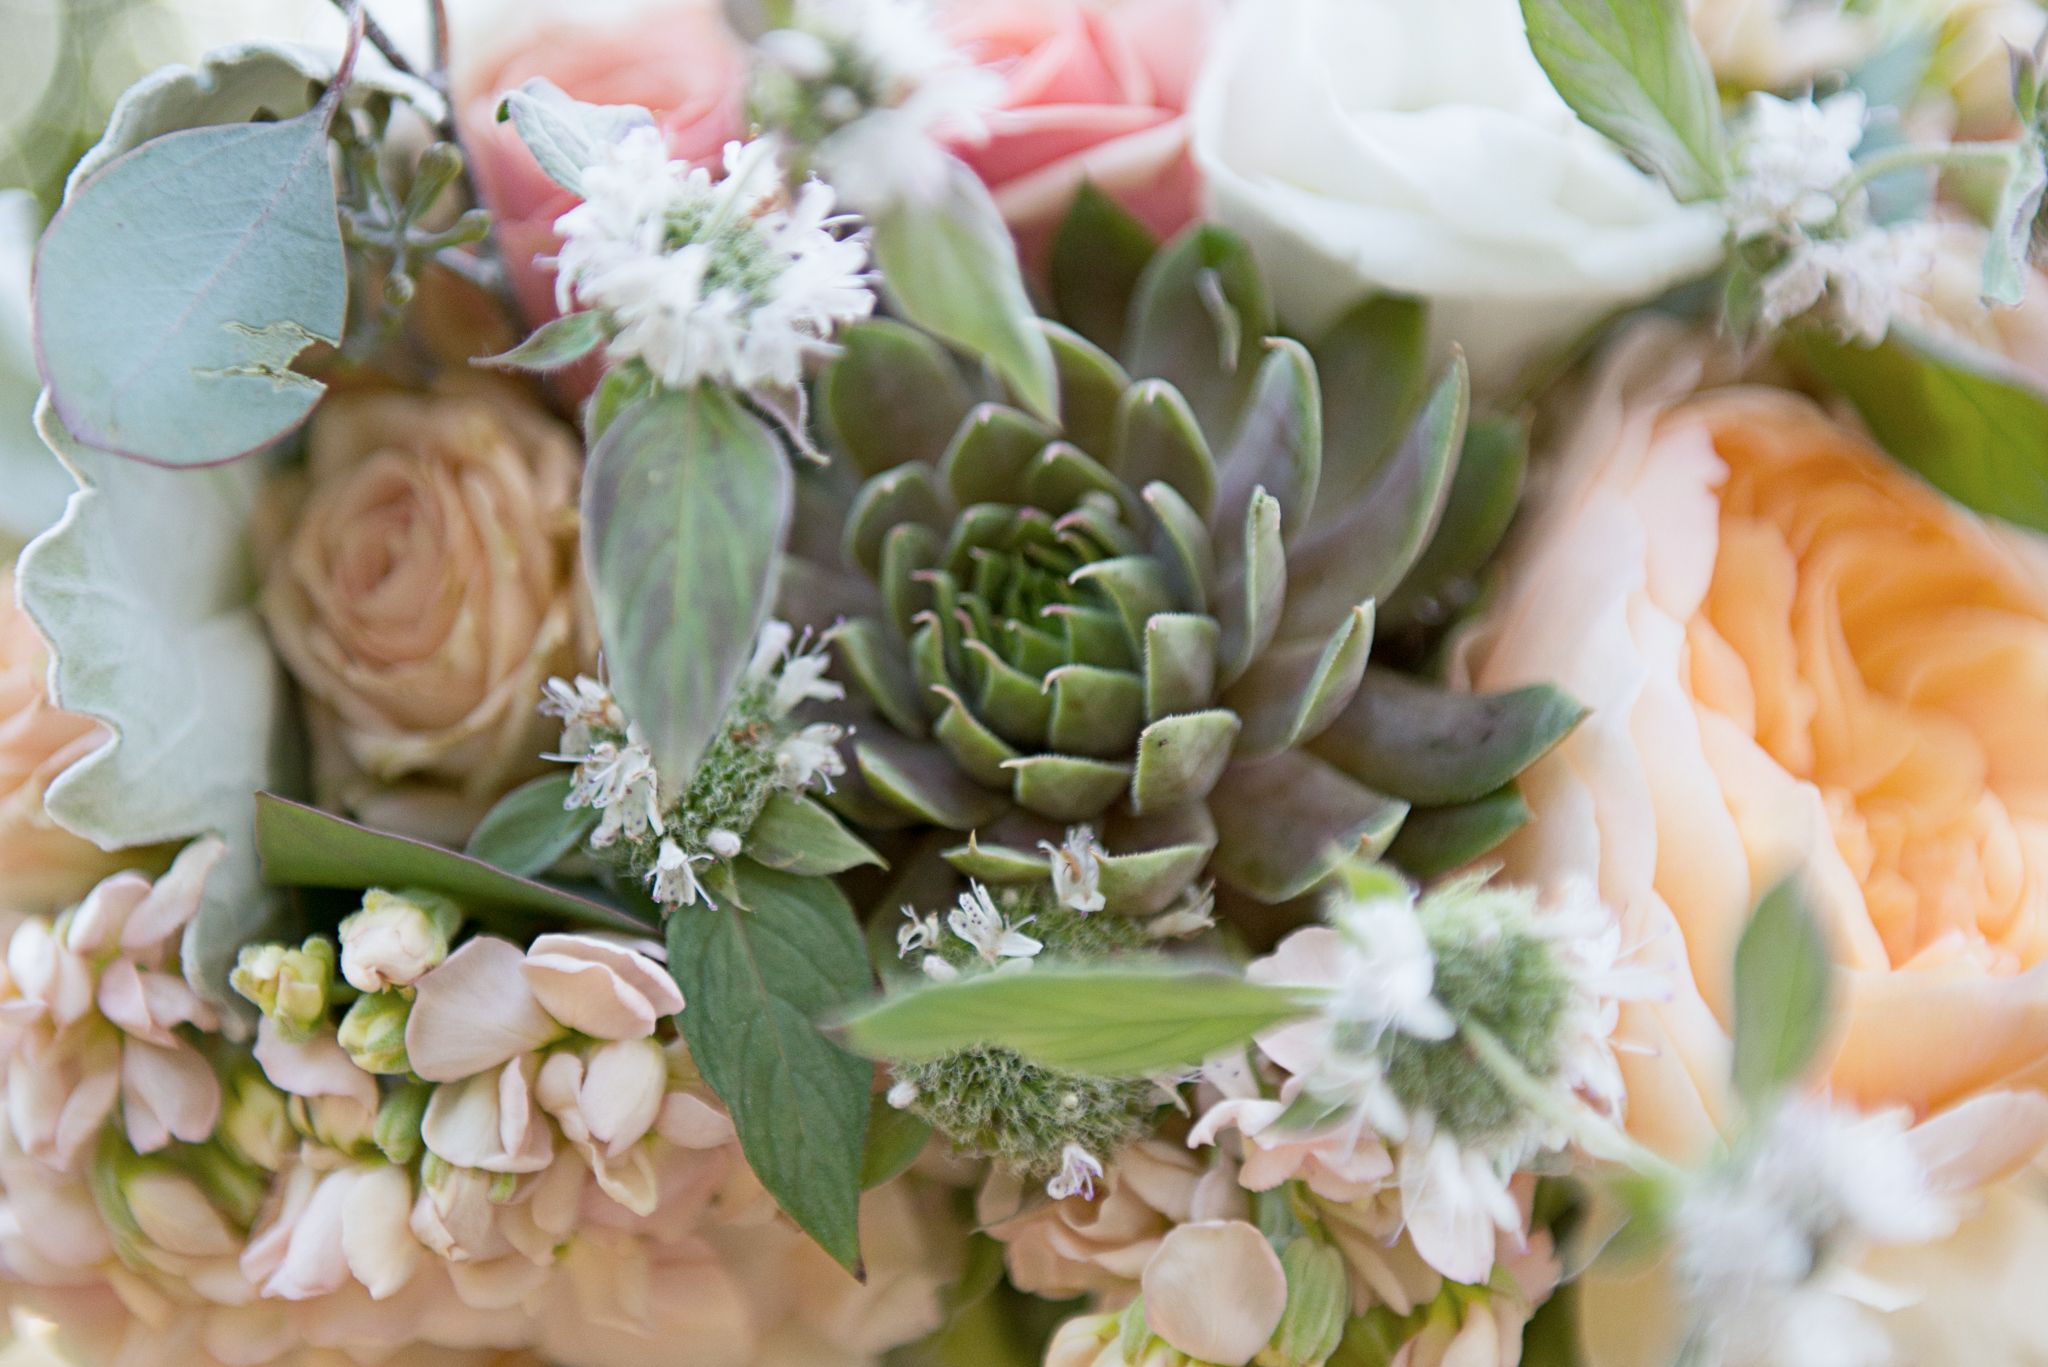 Bridal bouquet with succulents, peach garden roses, white astrantia, spray rose, and seeded eucalyptus by Karen Thorsey  - Foxtail Cottage Florals